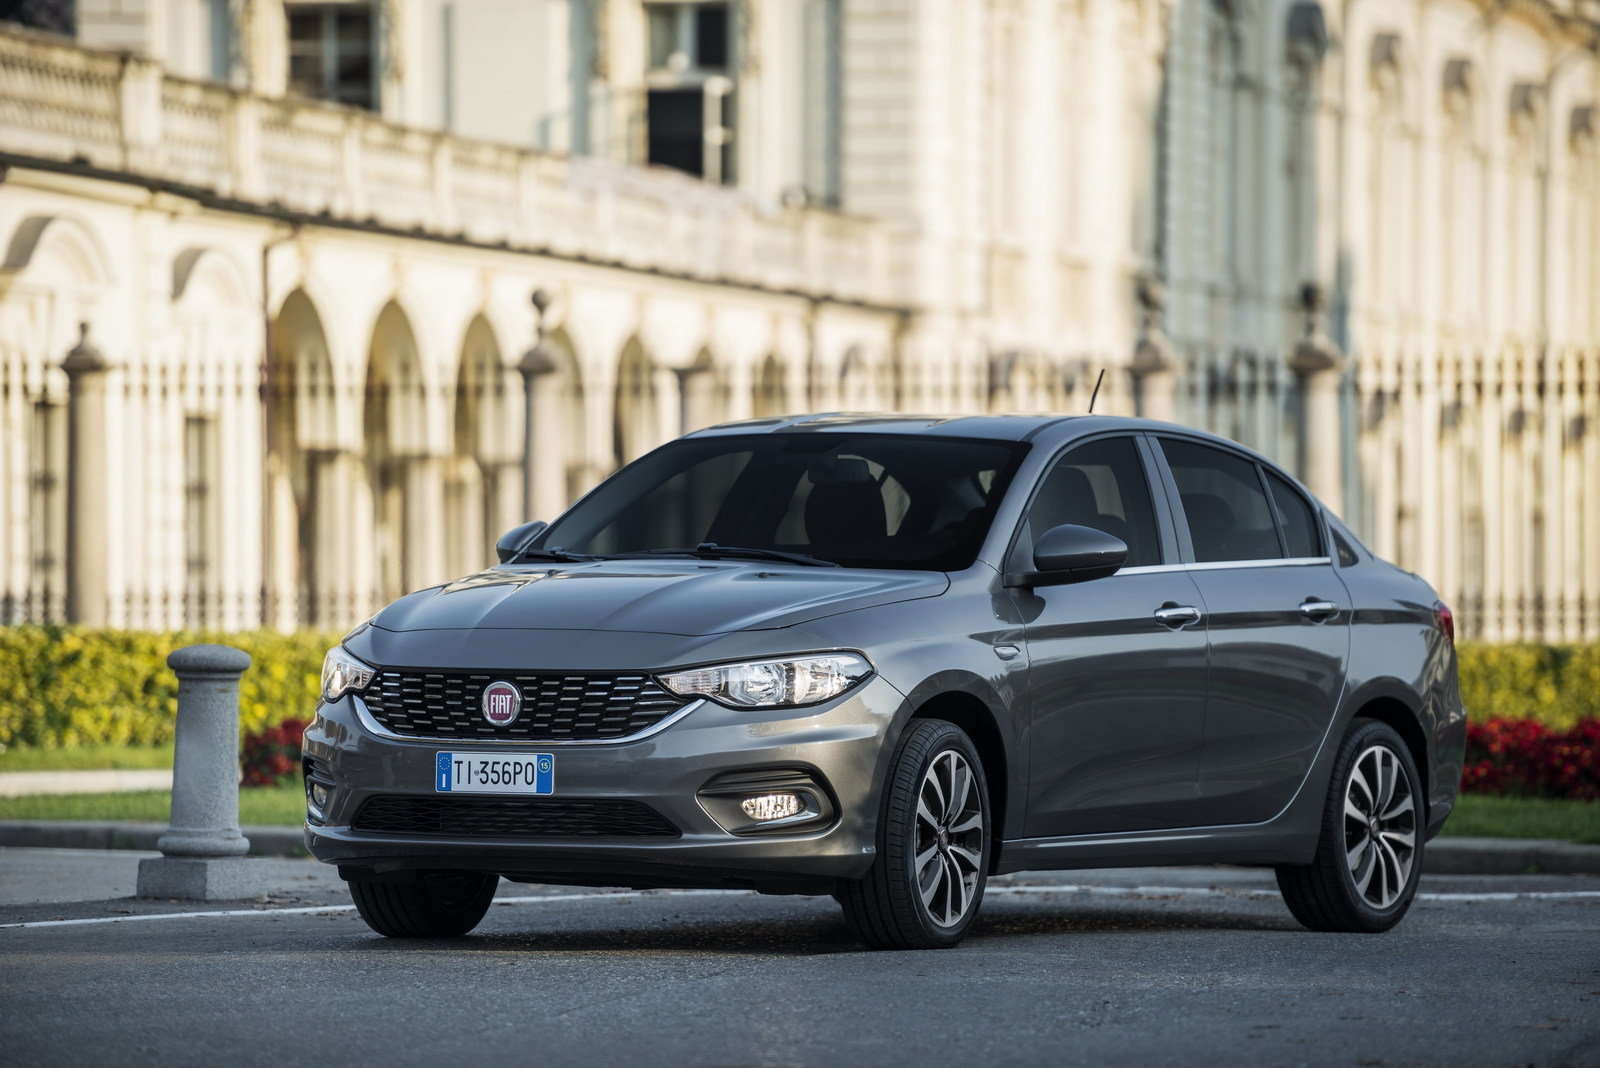 2017 fiat tipo picture 657820 car review top speed. Black Bedroom Furniture Sets. Home Design Ideas